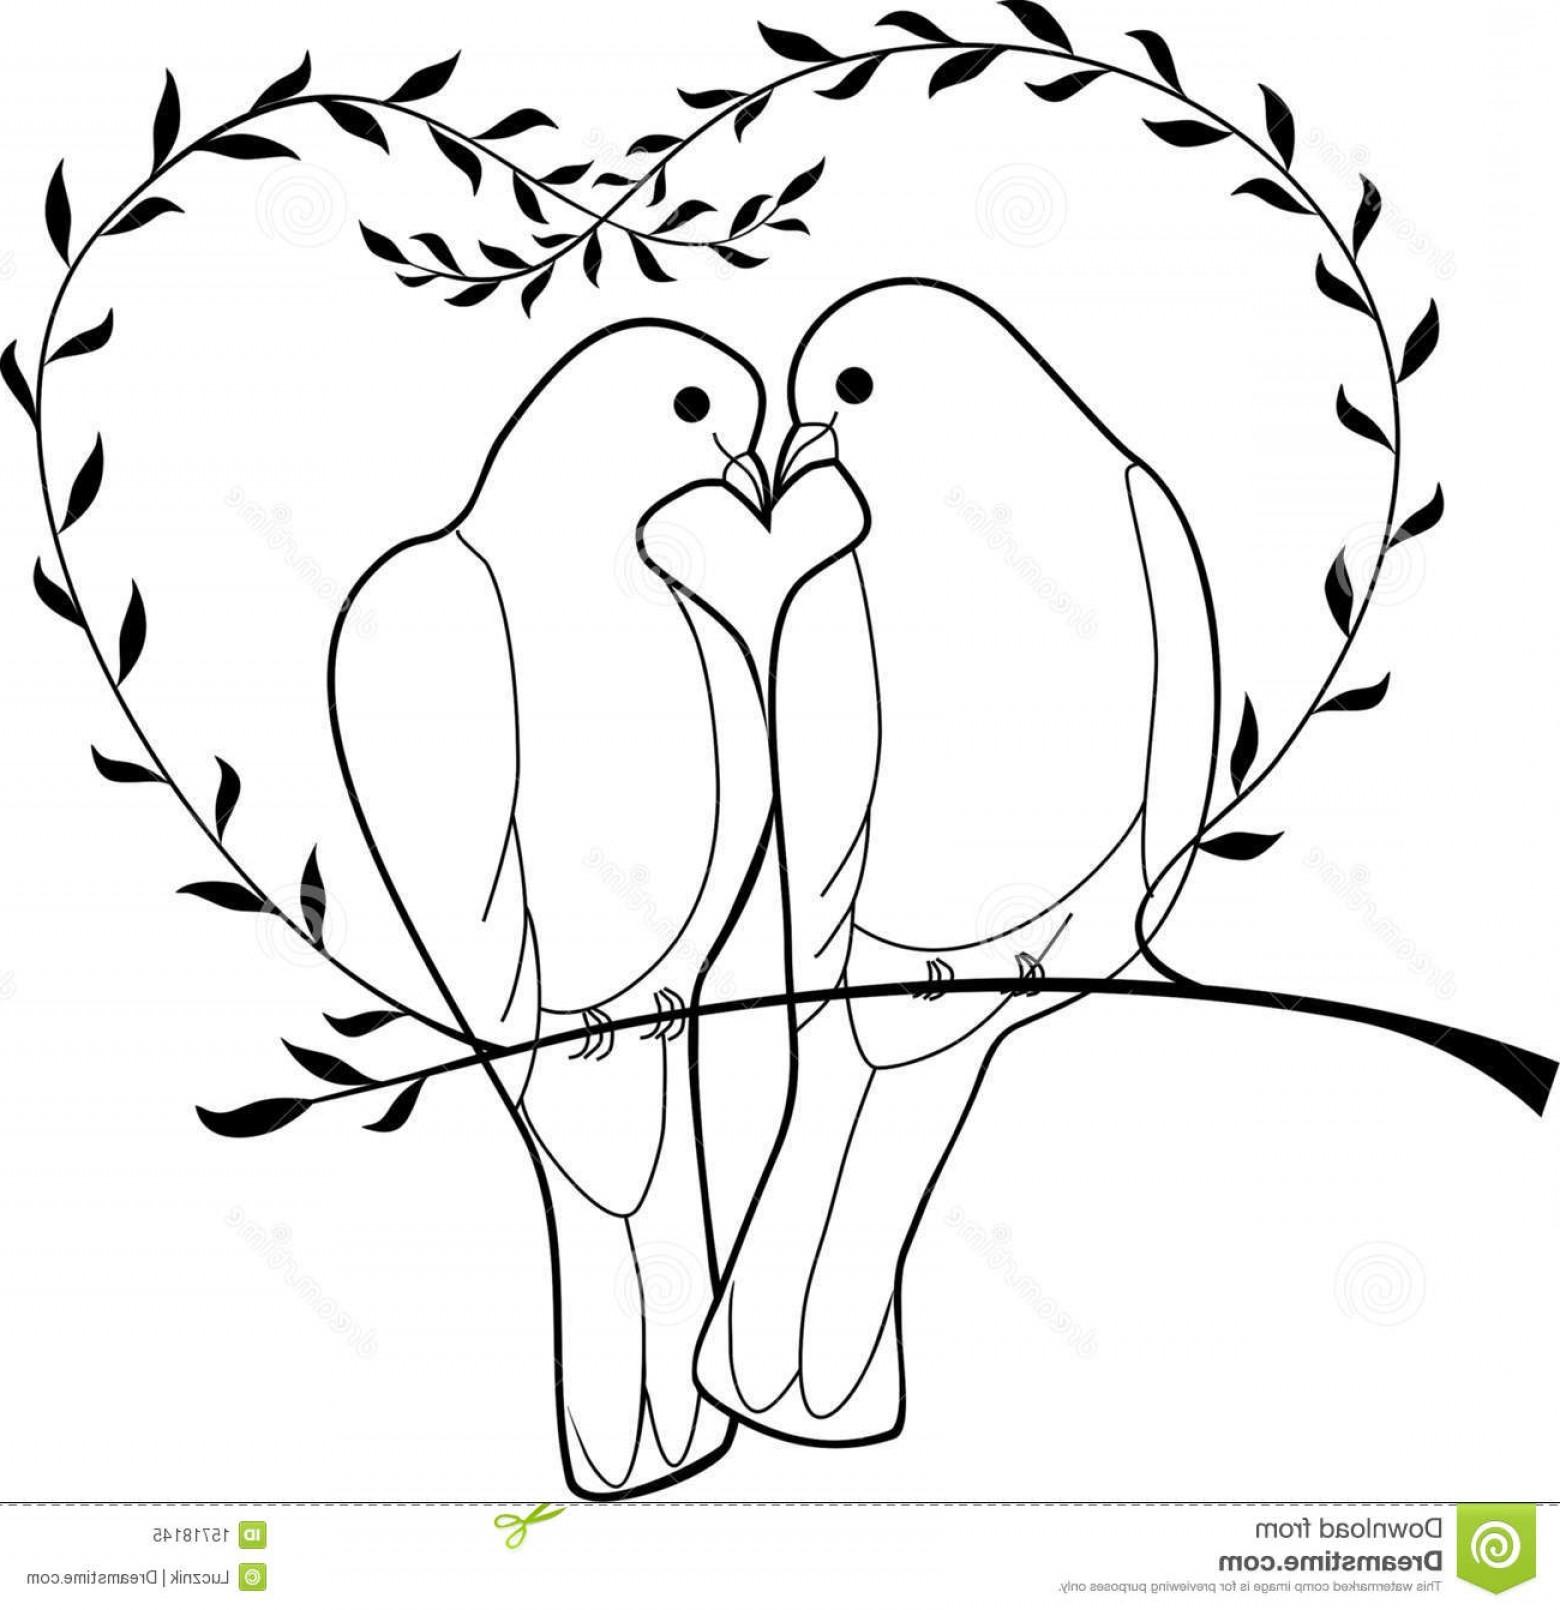 Vector Wedding Doves 2: Royalty Free Stock Photo Doves Image